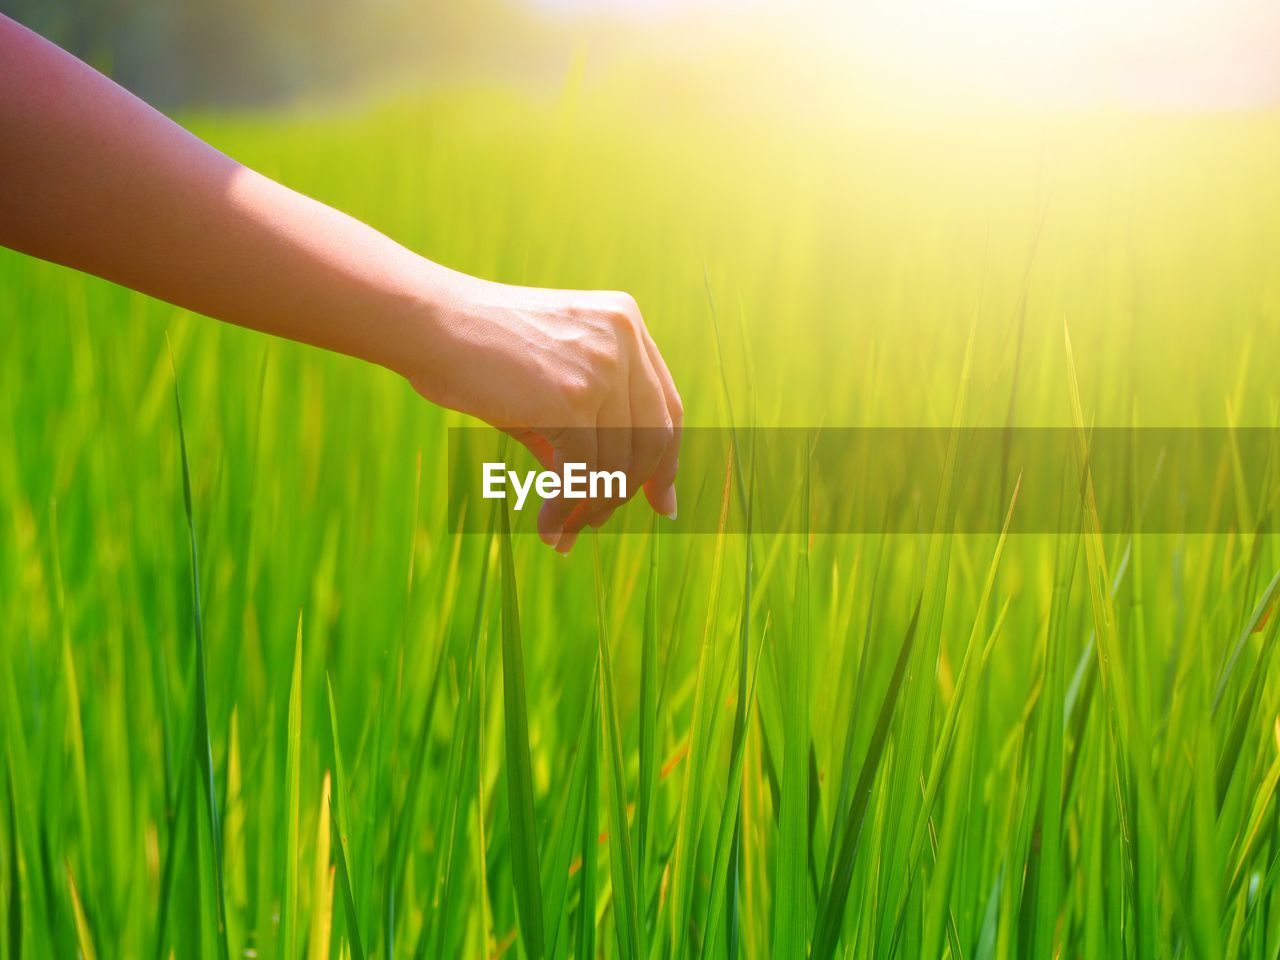 green color, human hand, human body part, hand, plant, one person, land, real people, field, nature, grass, body part, unrecognizable person, beauty in nature, day, sunlight, growth, lifestyles, finger, outdoors, human limb